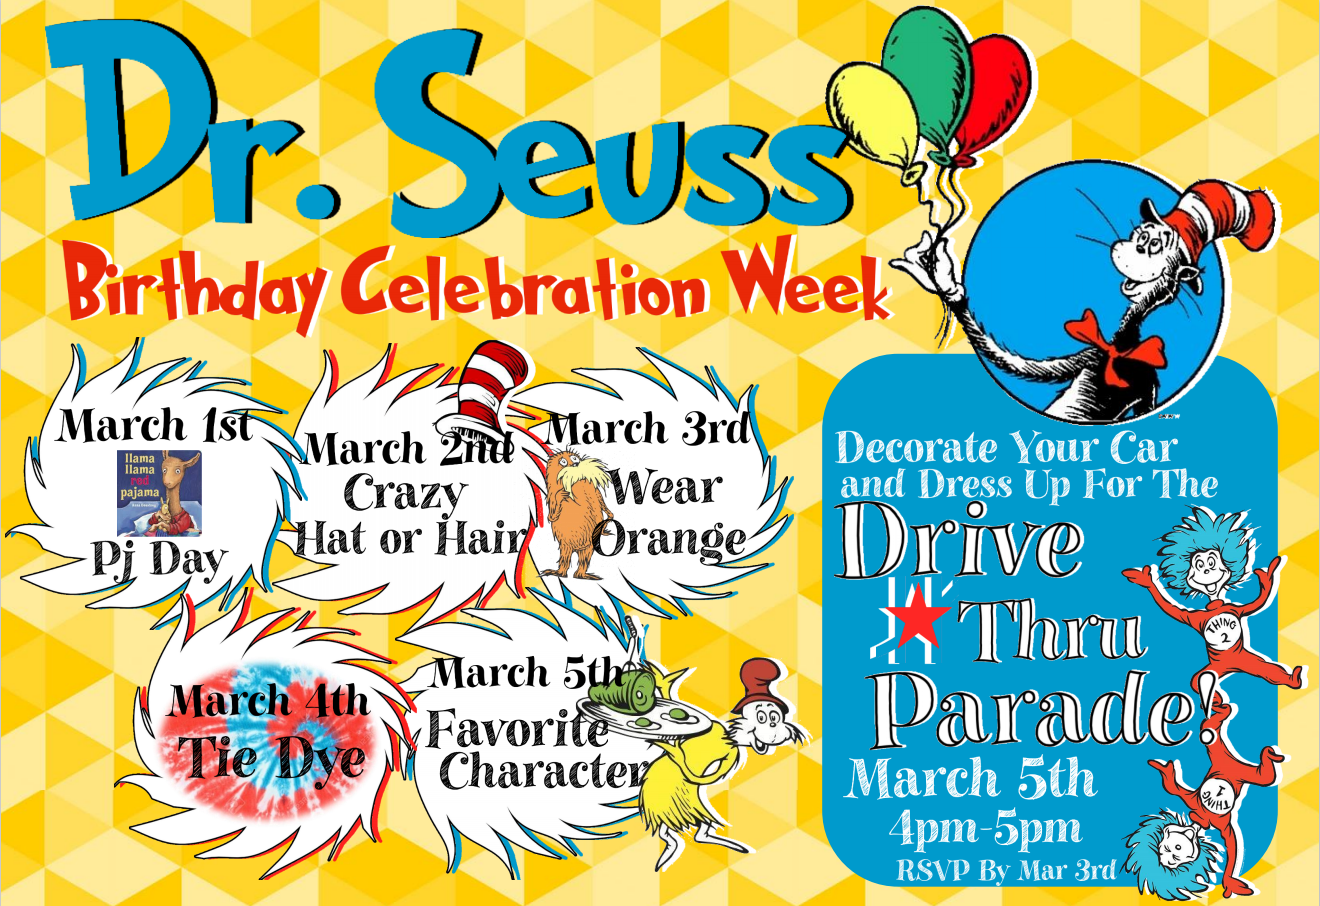 An image of the Dr. Seuss Birthday Celebration Week flyer